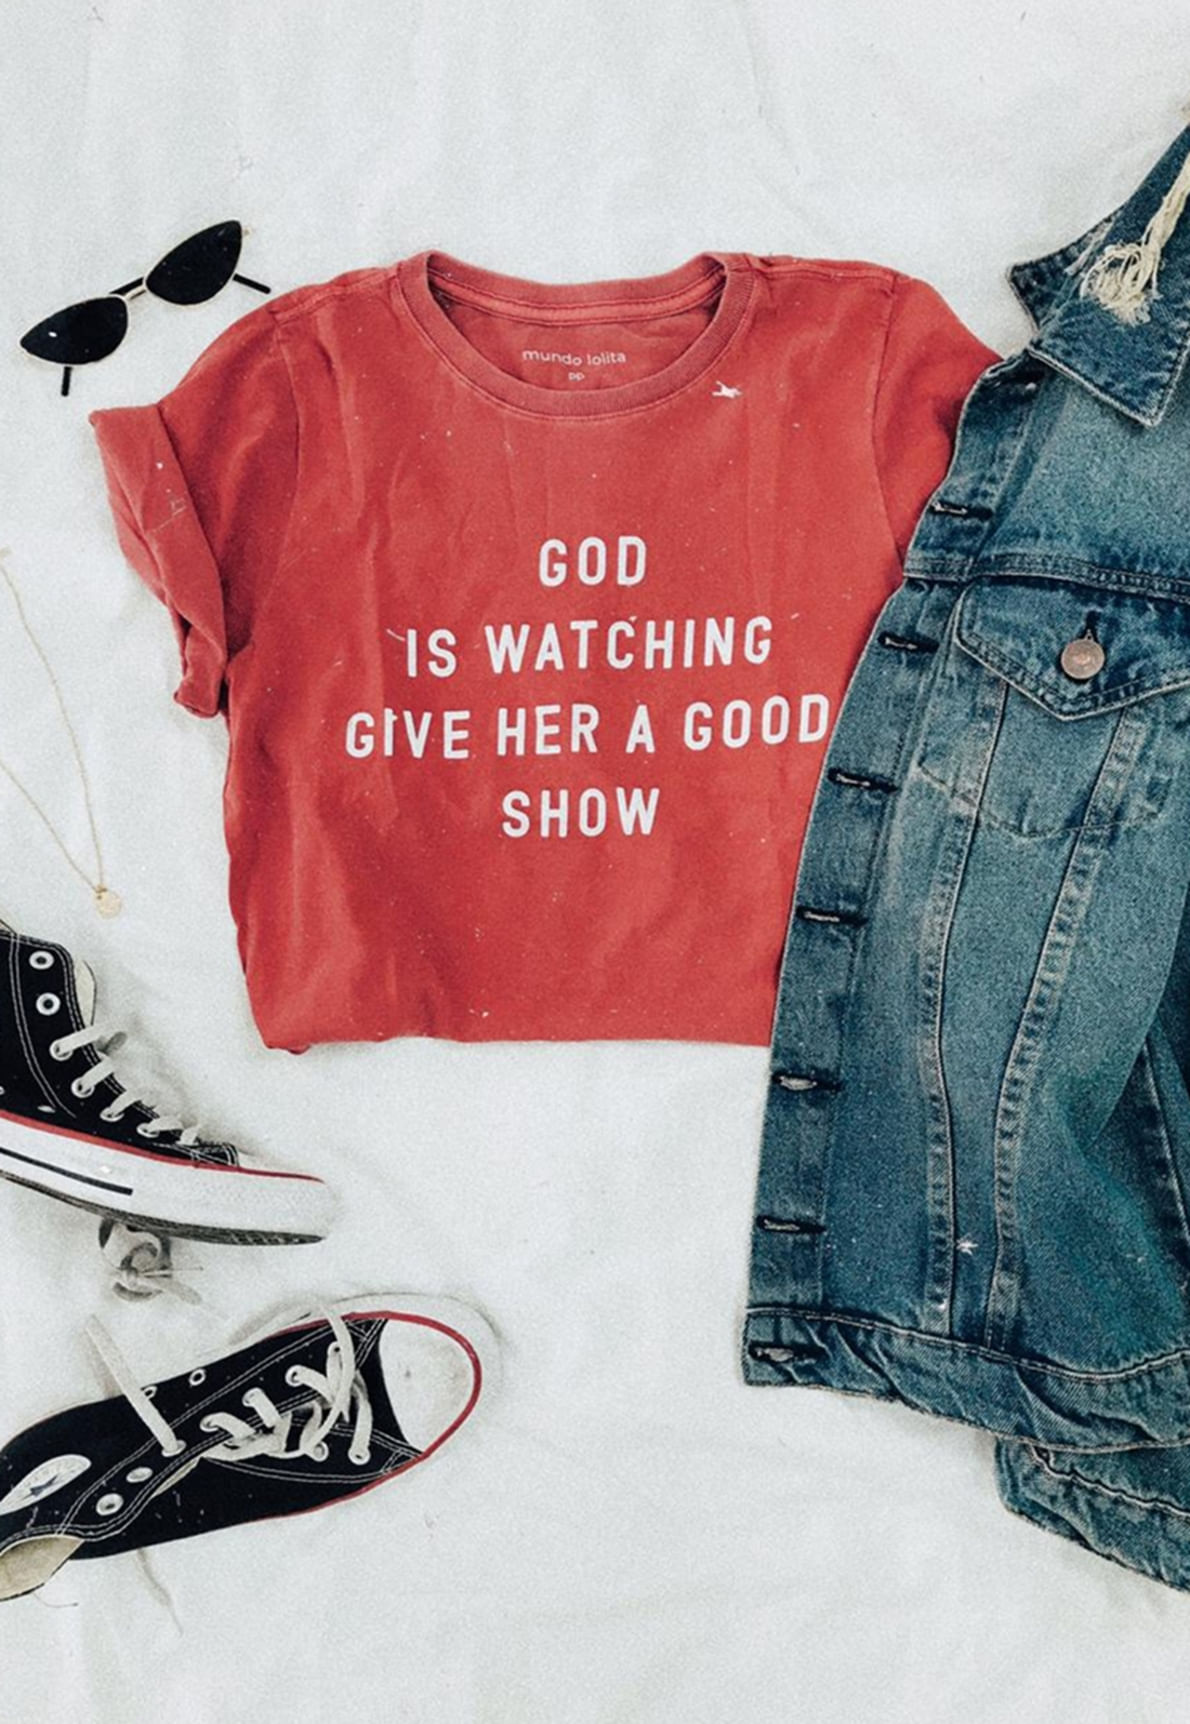 30185-t-shirt-god-is-watching-mundo-lolita-mundo-lolita-01